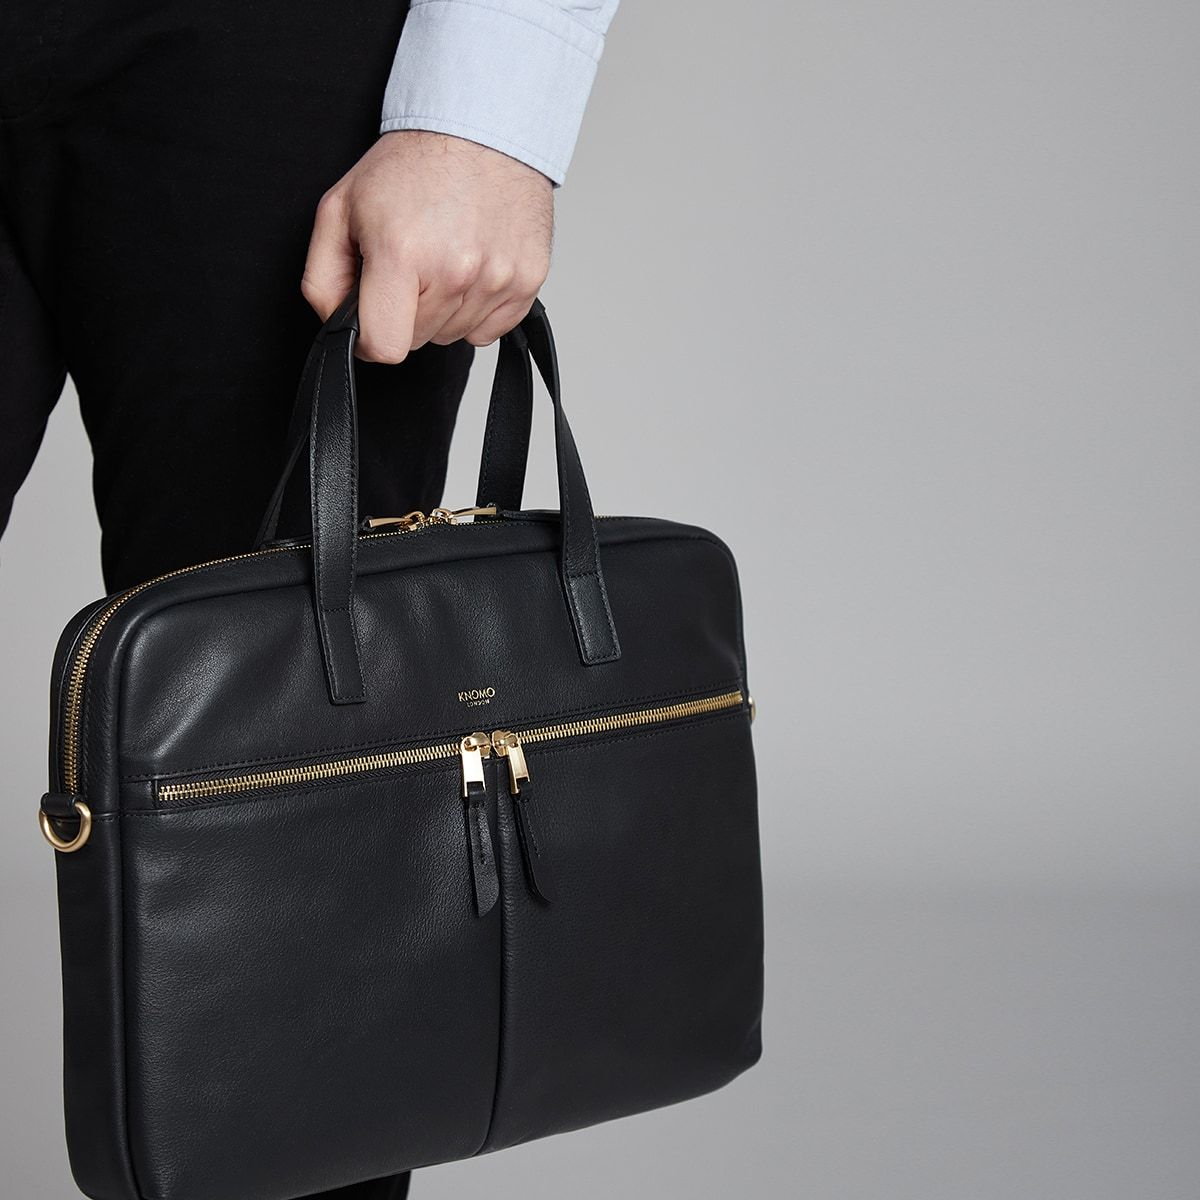 "KNOMO Hanover Laptop Briefcase Male Model Holding From Straps 14"" -  Black 